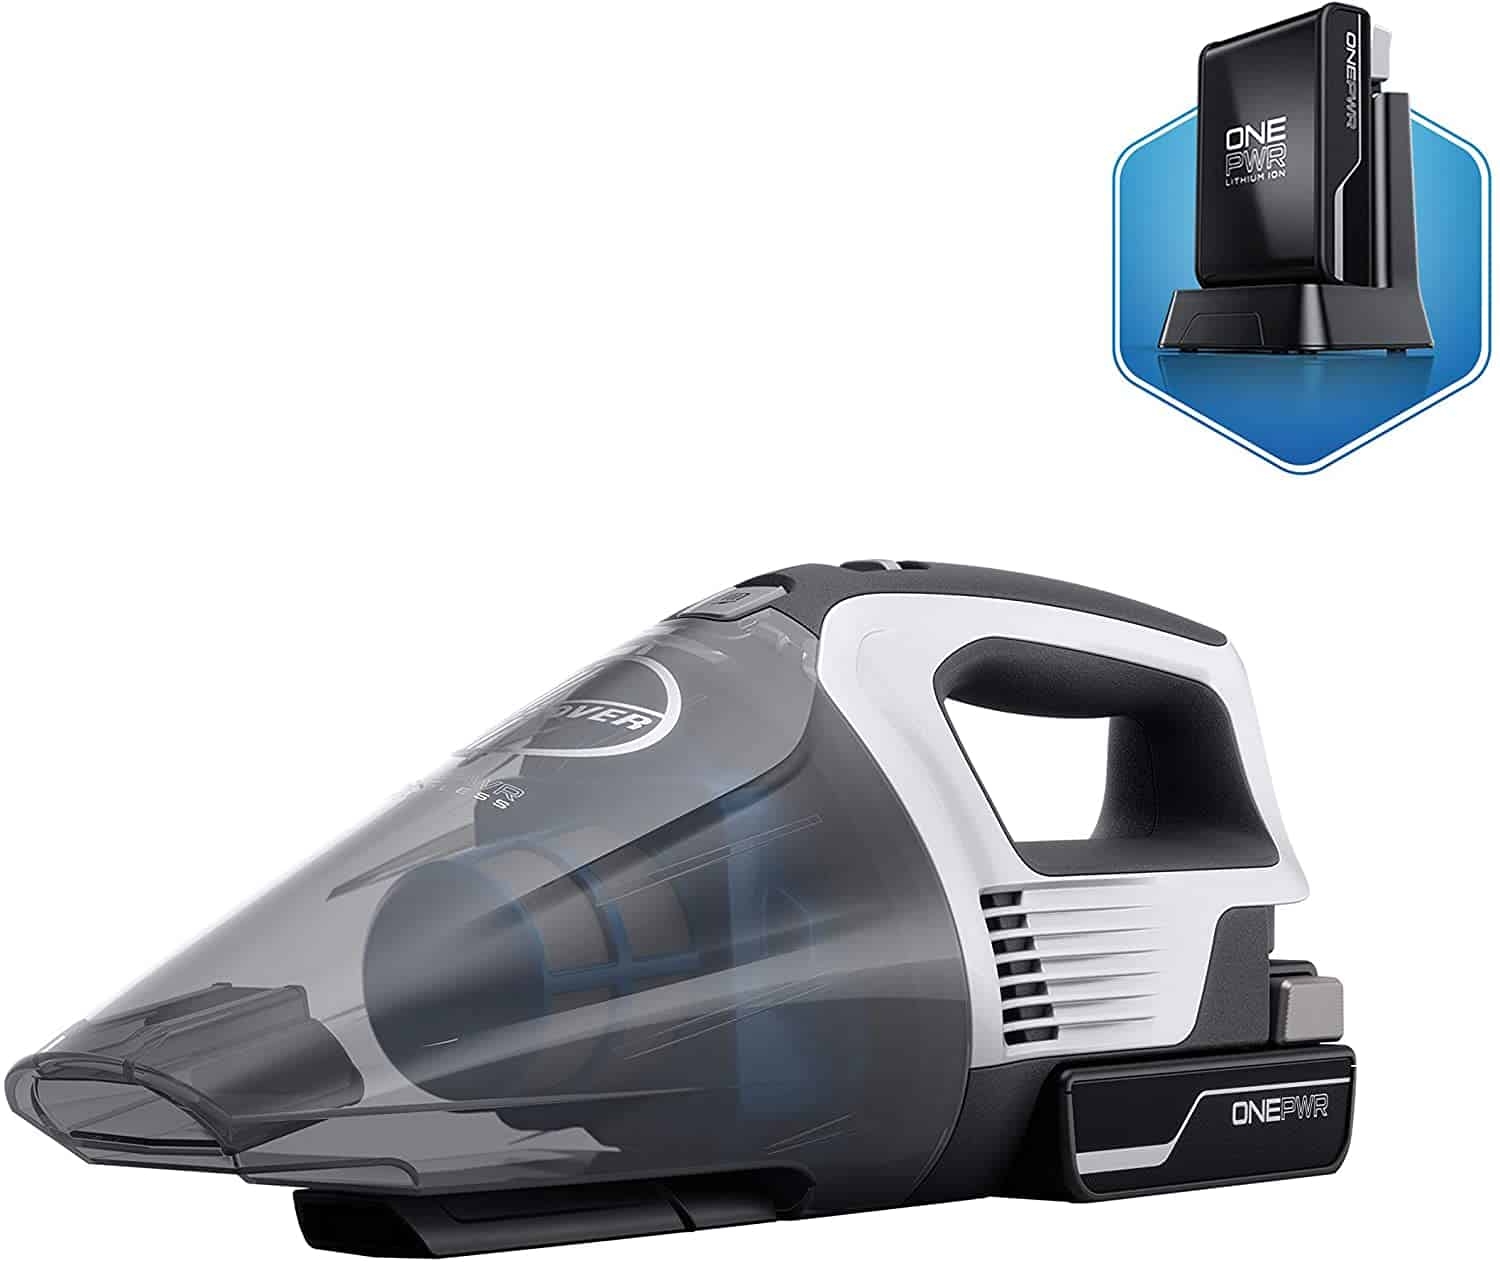 Best handheld vac With Replaceable Battery: Hoover ONEPWR